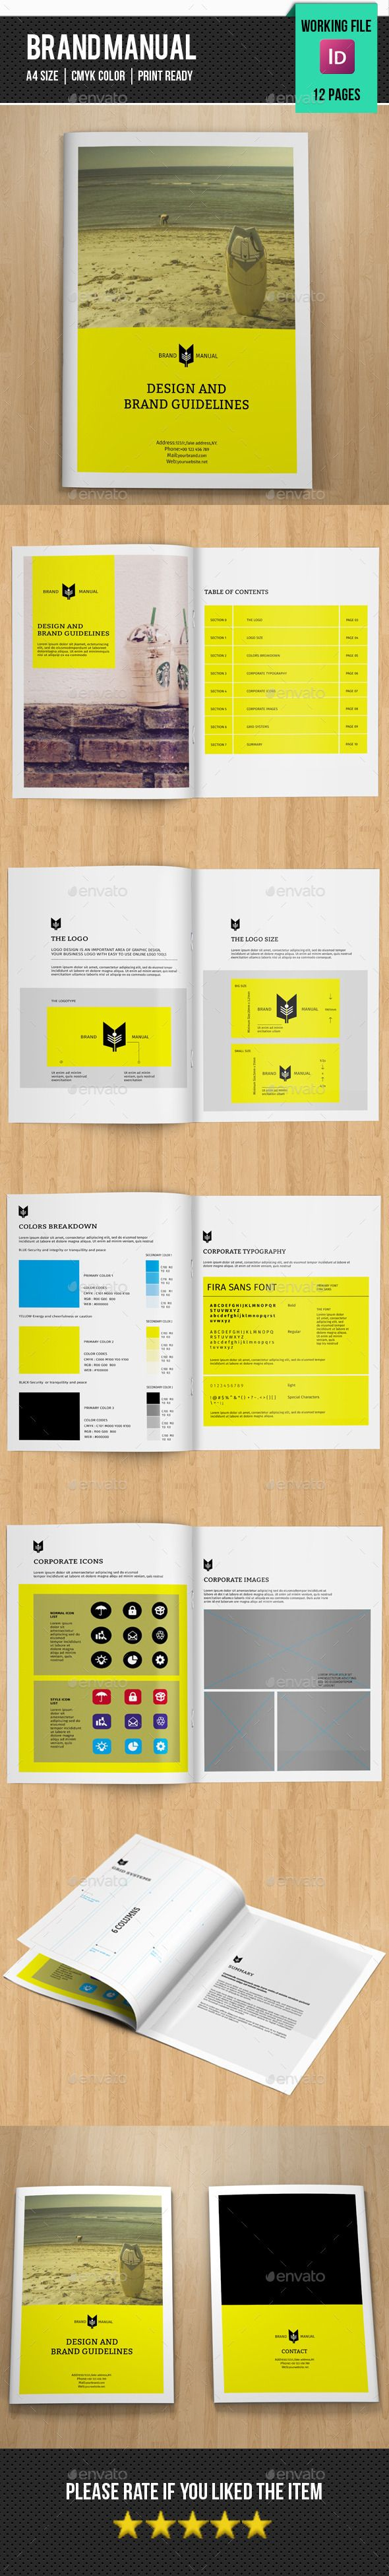 The 25+ best Corporate design manual ideas on Pinterest | Brand ...